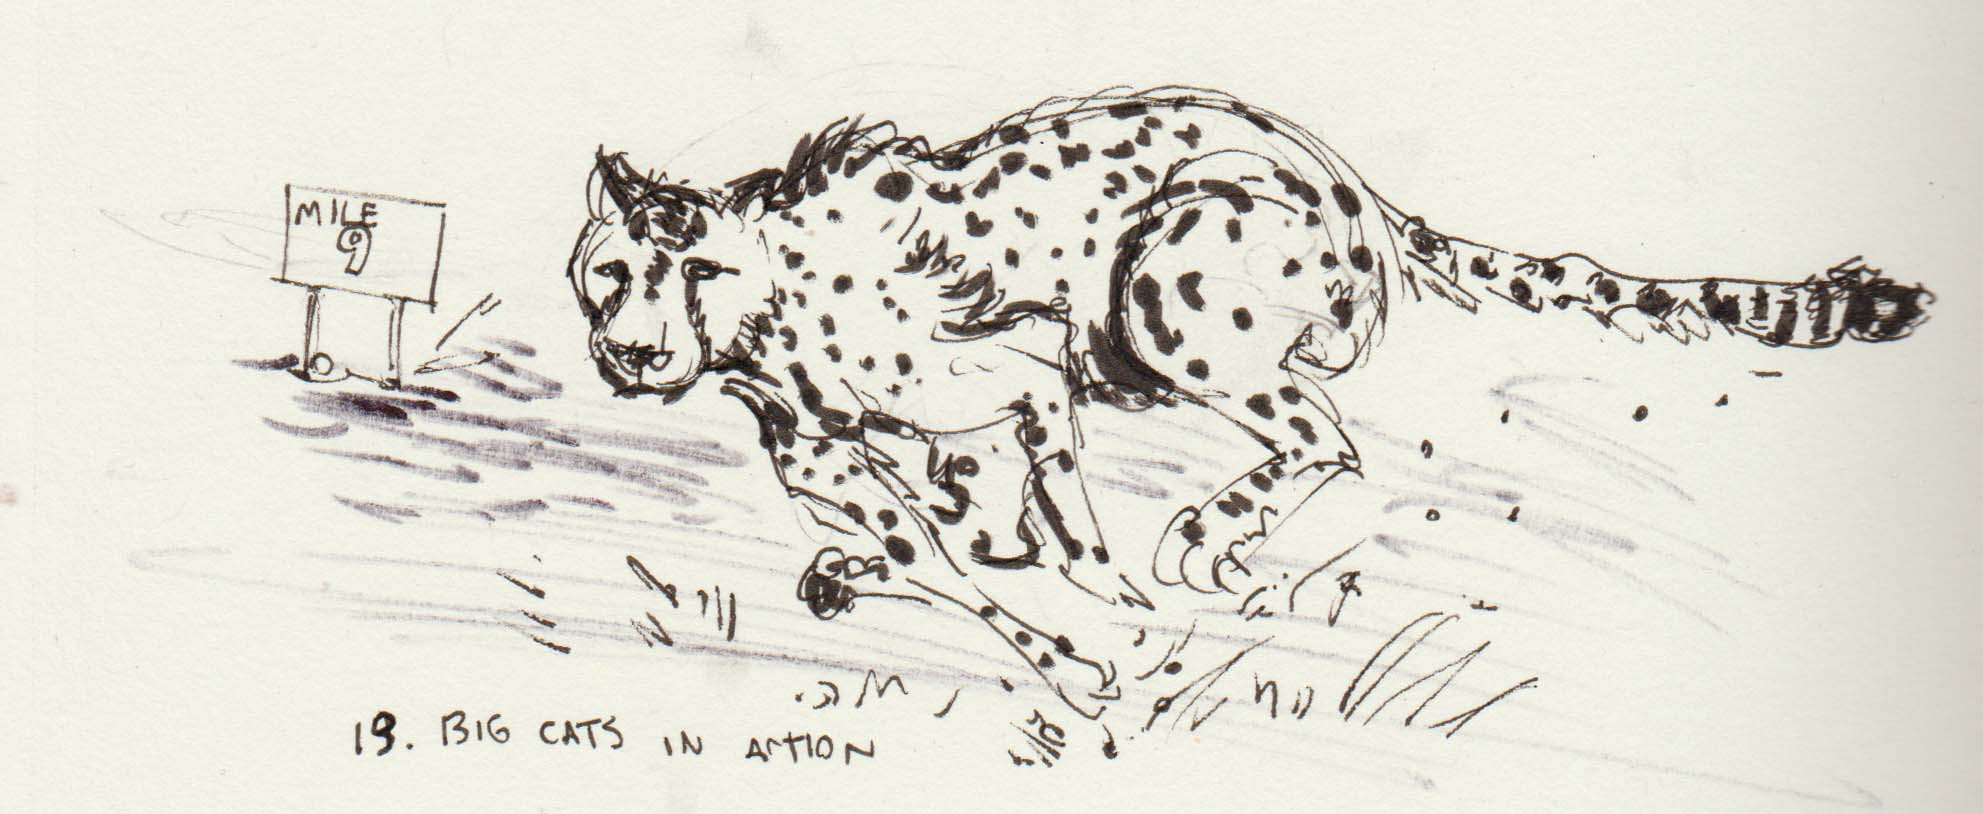 Inktober Day 13 Big Cats in Action.jpg